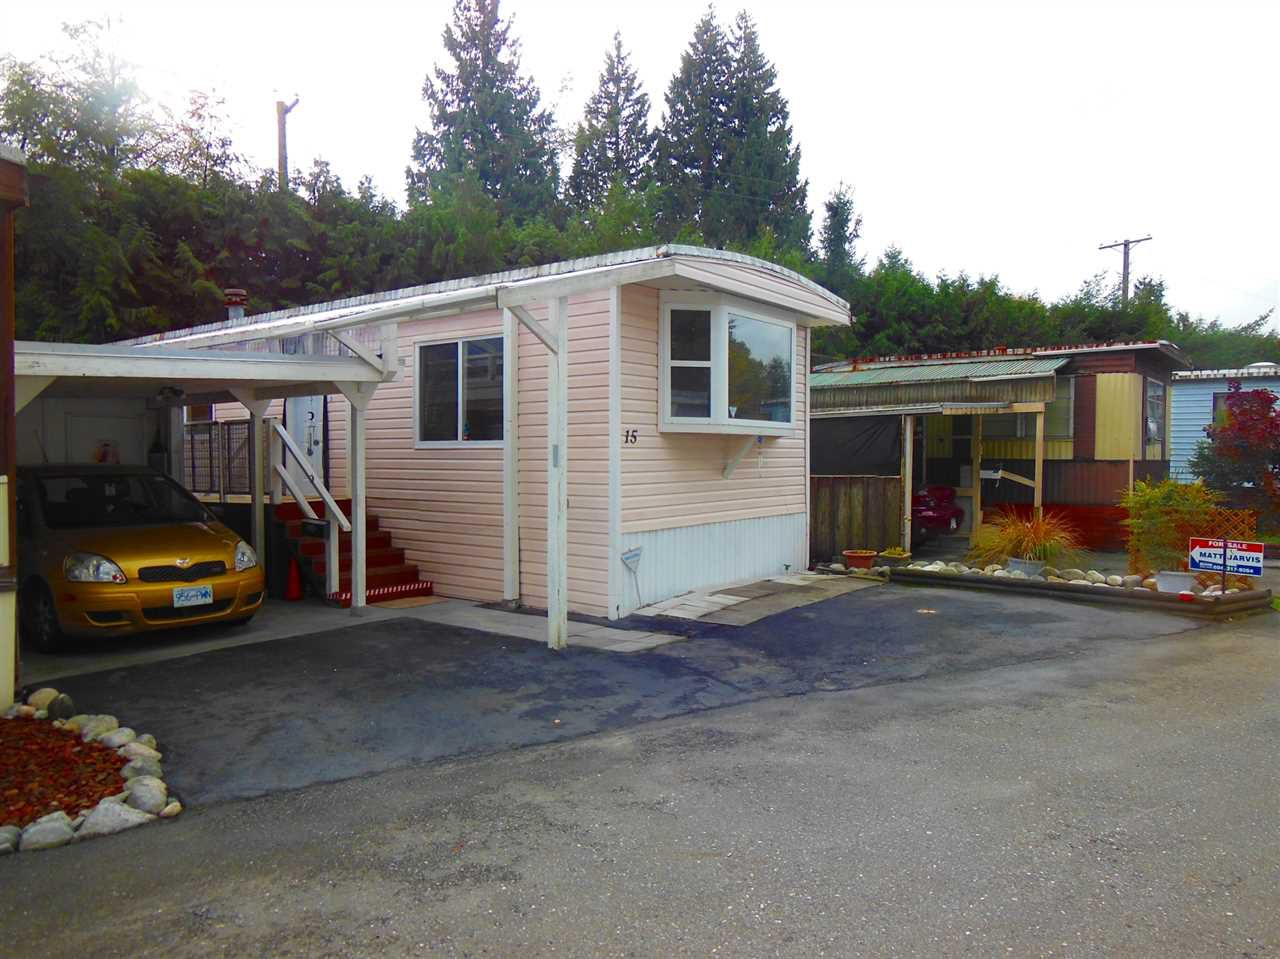 Main Photo: 15 4200 DEWDNEY TRUNK ROAD in Coquitlam: Ranch Park Manufactured Home for sale : MLS®# R2013256